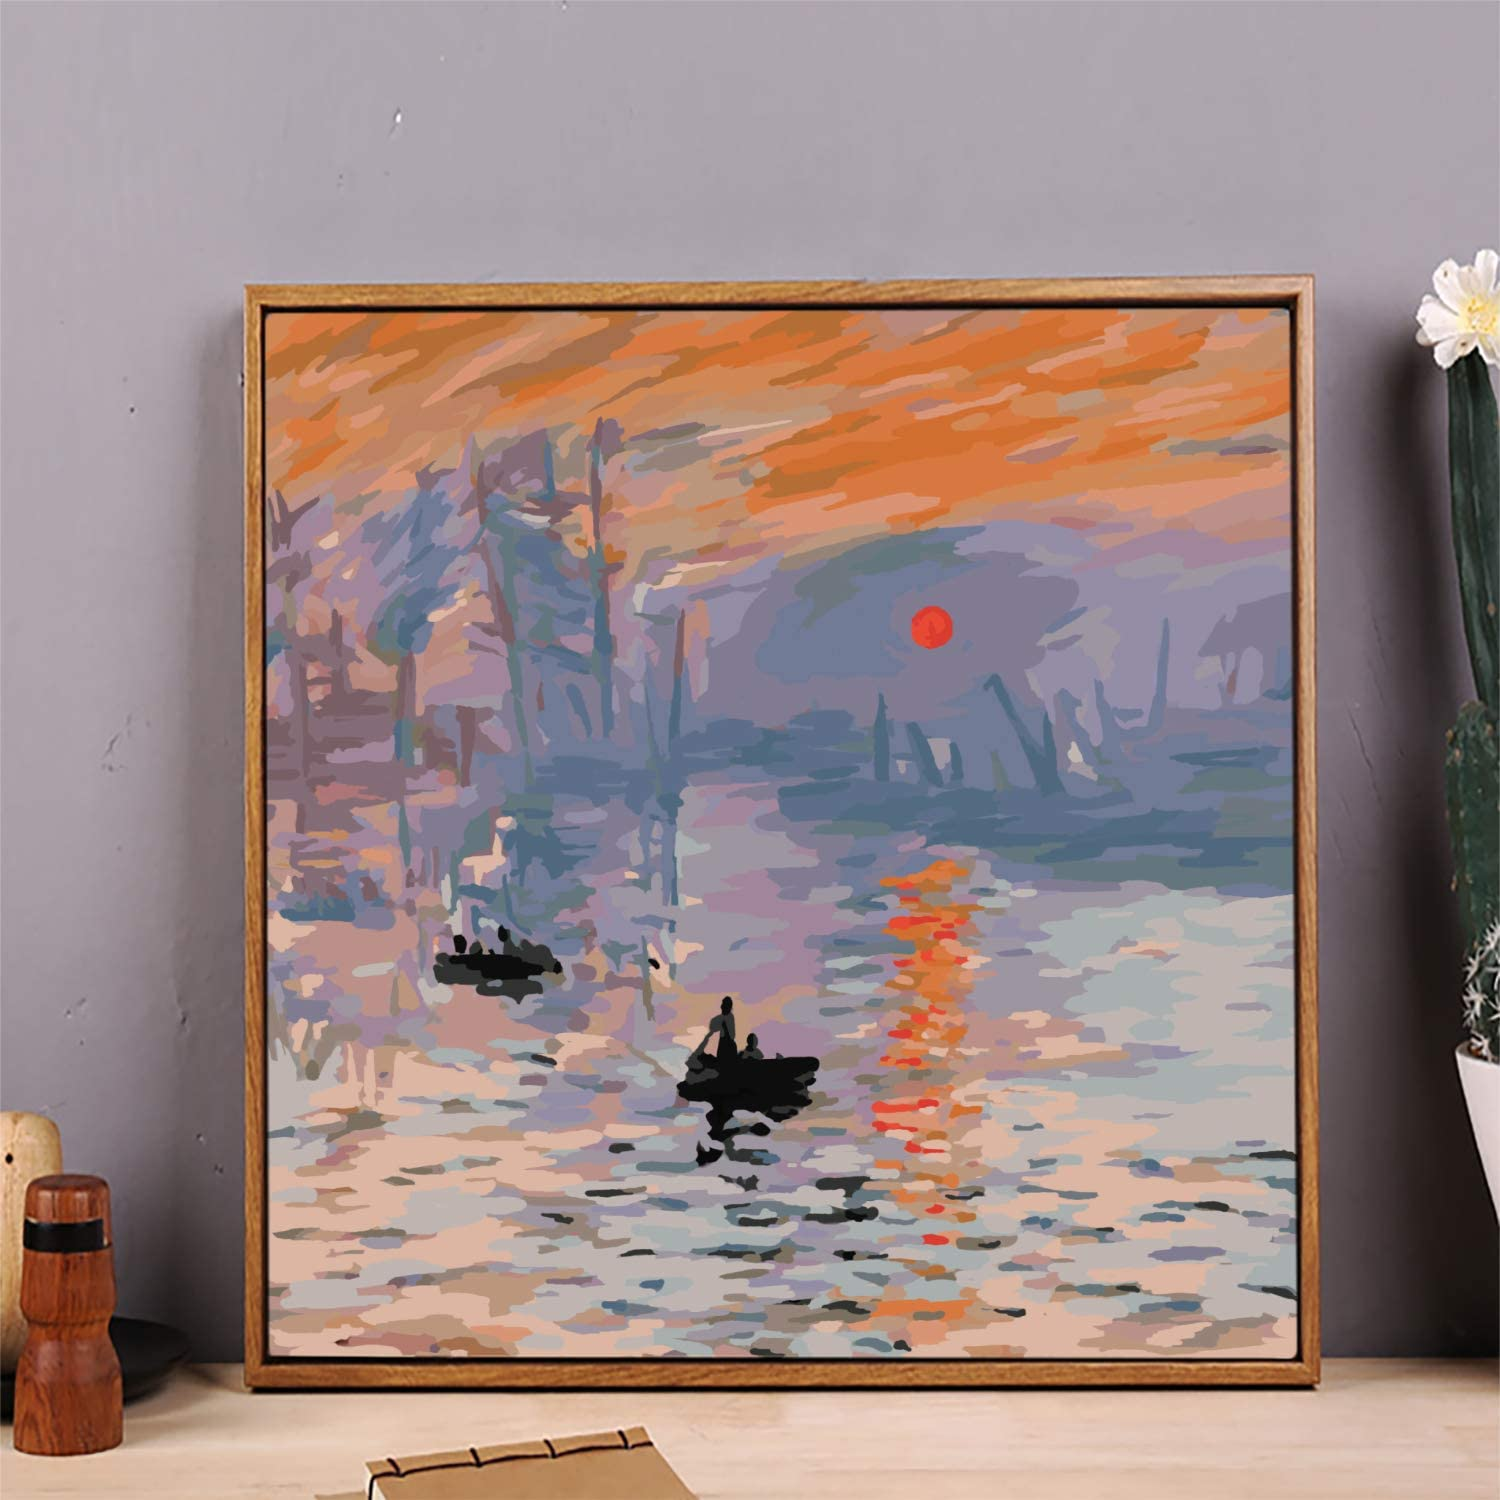 Paint by Numbers Kit for Adults Kids Beginners Without Frame Paint by Numbers DIY 16x 20 inch DIY Painting Number Adult Acrylic Sunrise